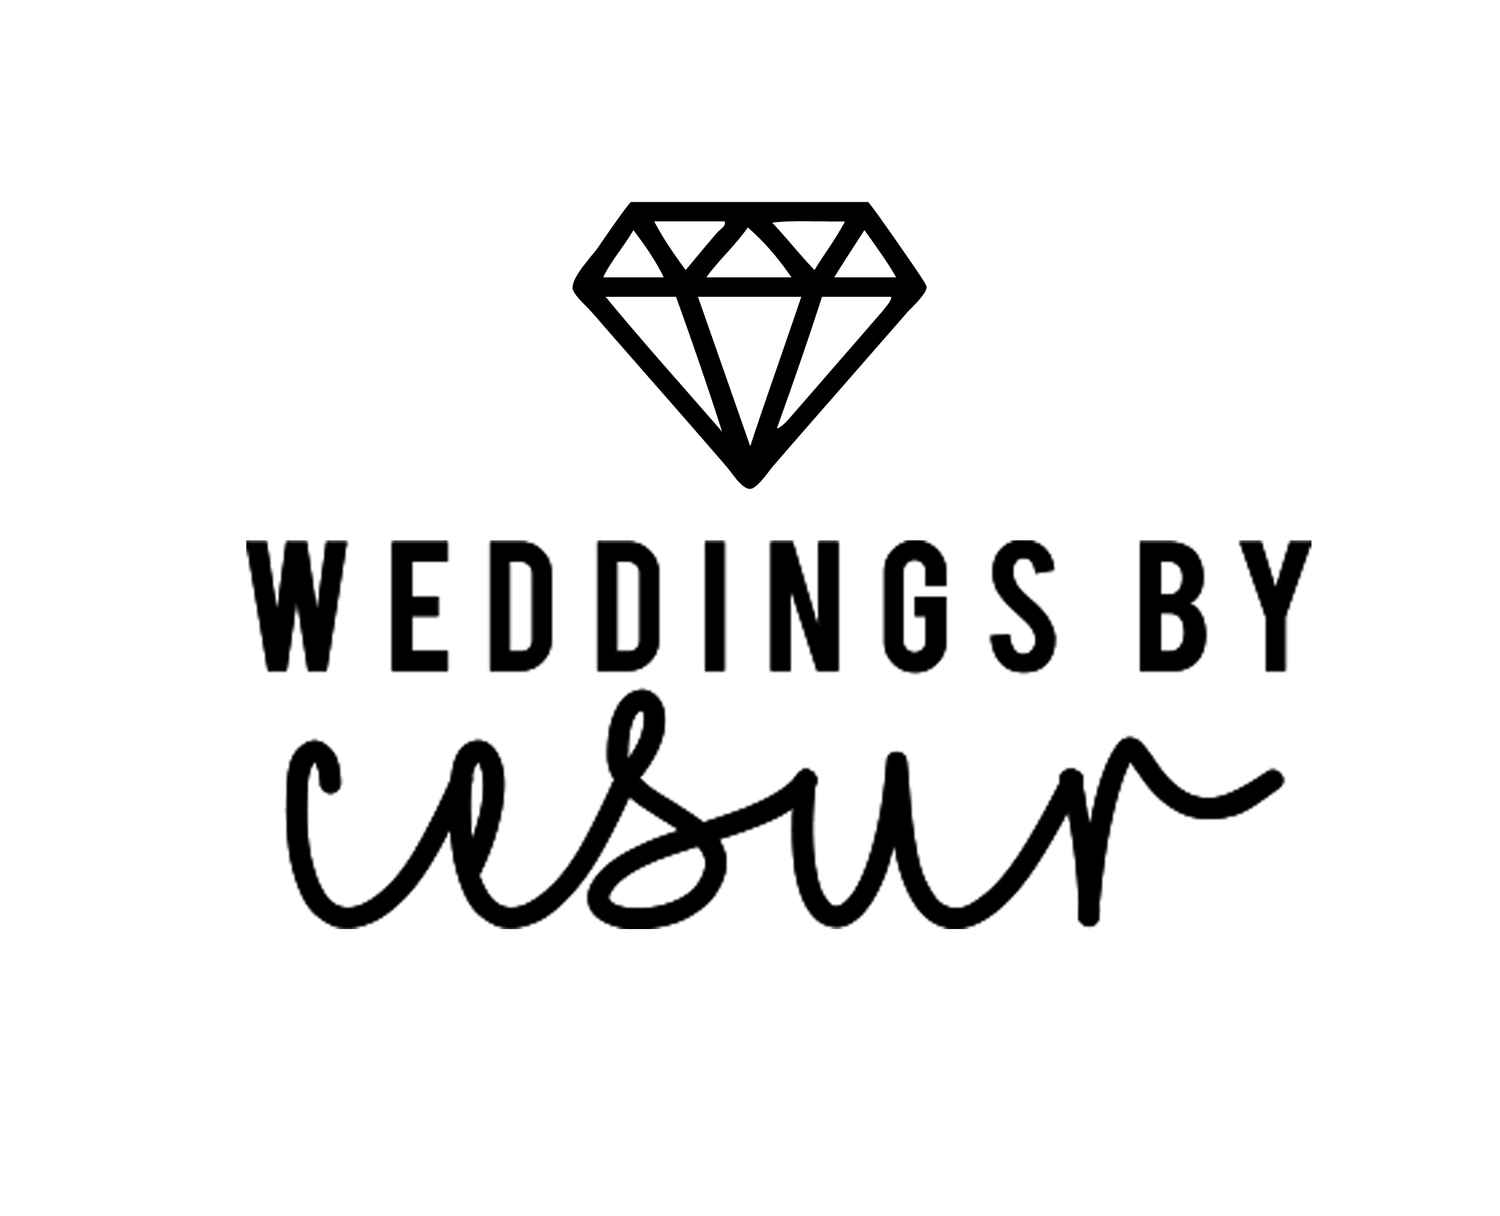 Weddings by Cesur